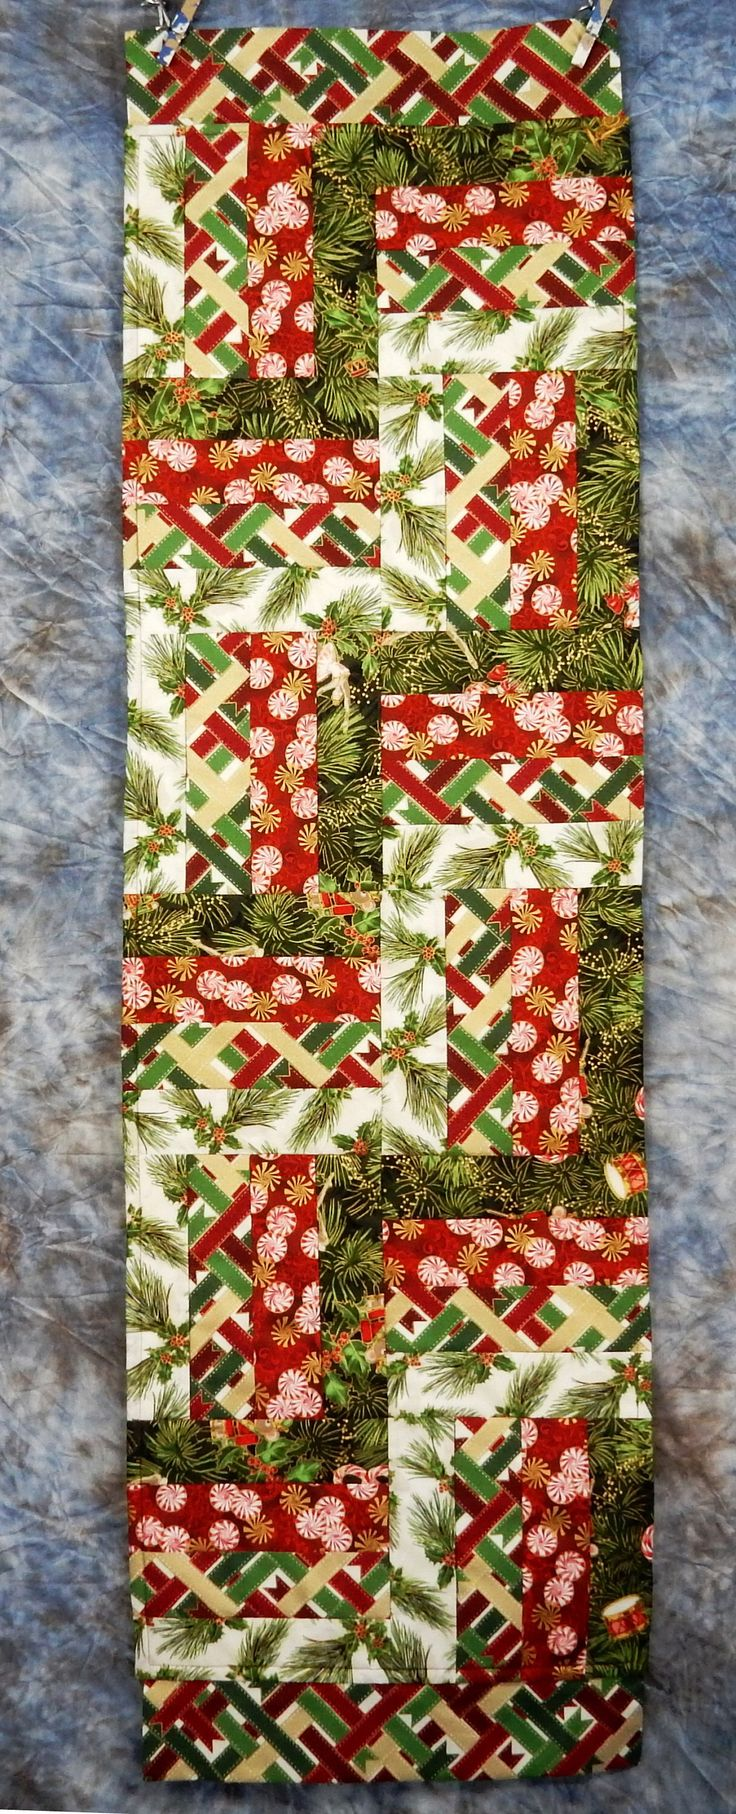 25 unique christmas runner ideas on pinterest quilted table runners xmas table runners and. Black Bedroom Furniture Sets. Home Design Ideas